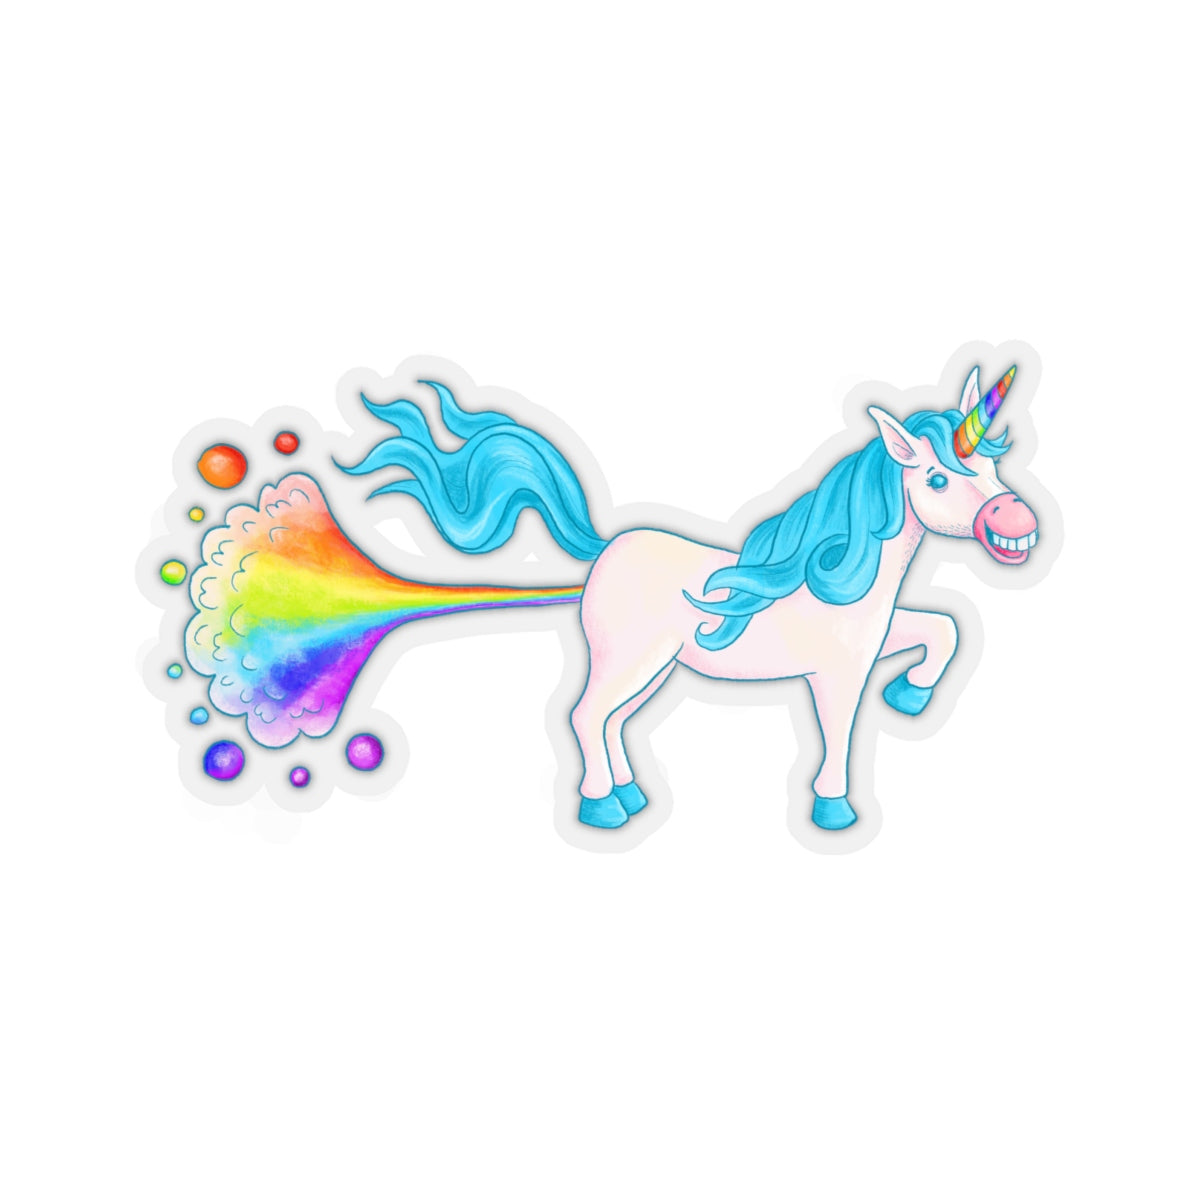 Rainbow Farting Unicorn Sticker, Rainbow Sticker, Unicorn Sticker, Rainbow Unicorn Sticker, Funny Sticker - jewelry-by-meesh